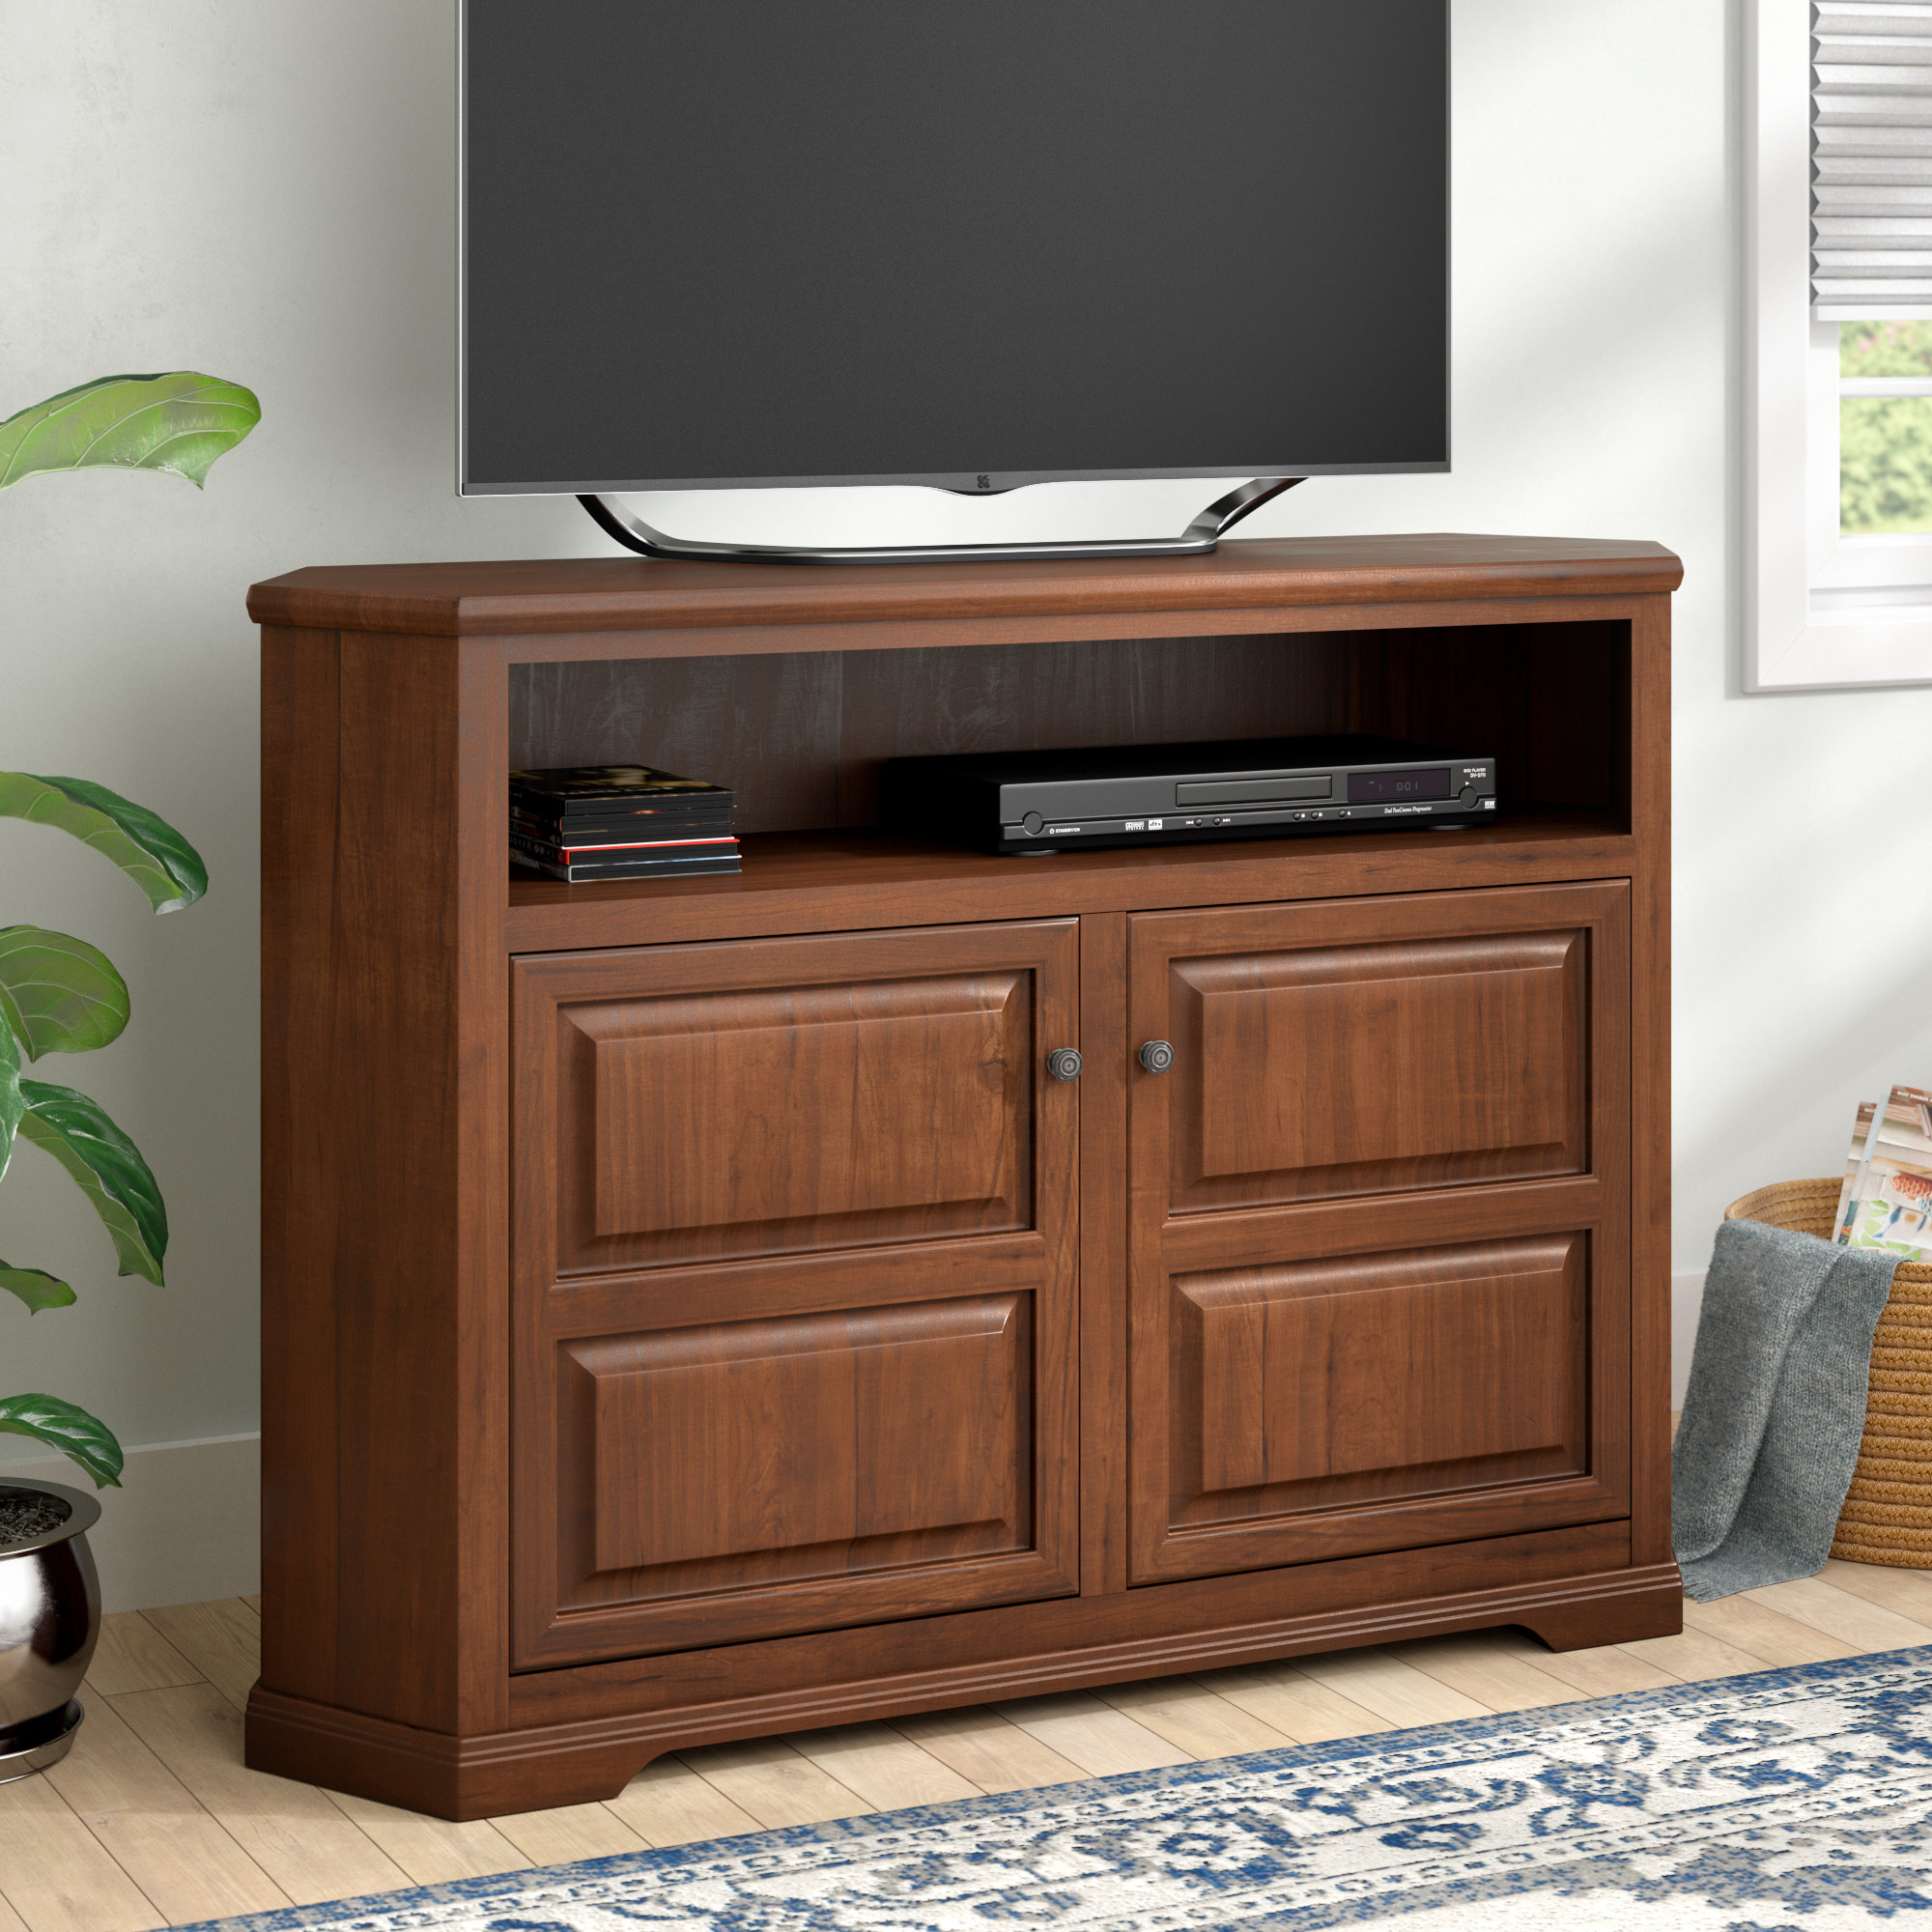 40 49 Inches Tall Tv Stands You'll Love | Wayfair Inside Kenzie 72 Inch Open Display Tv Stands (View 5 of 30)